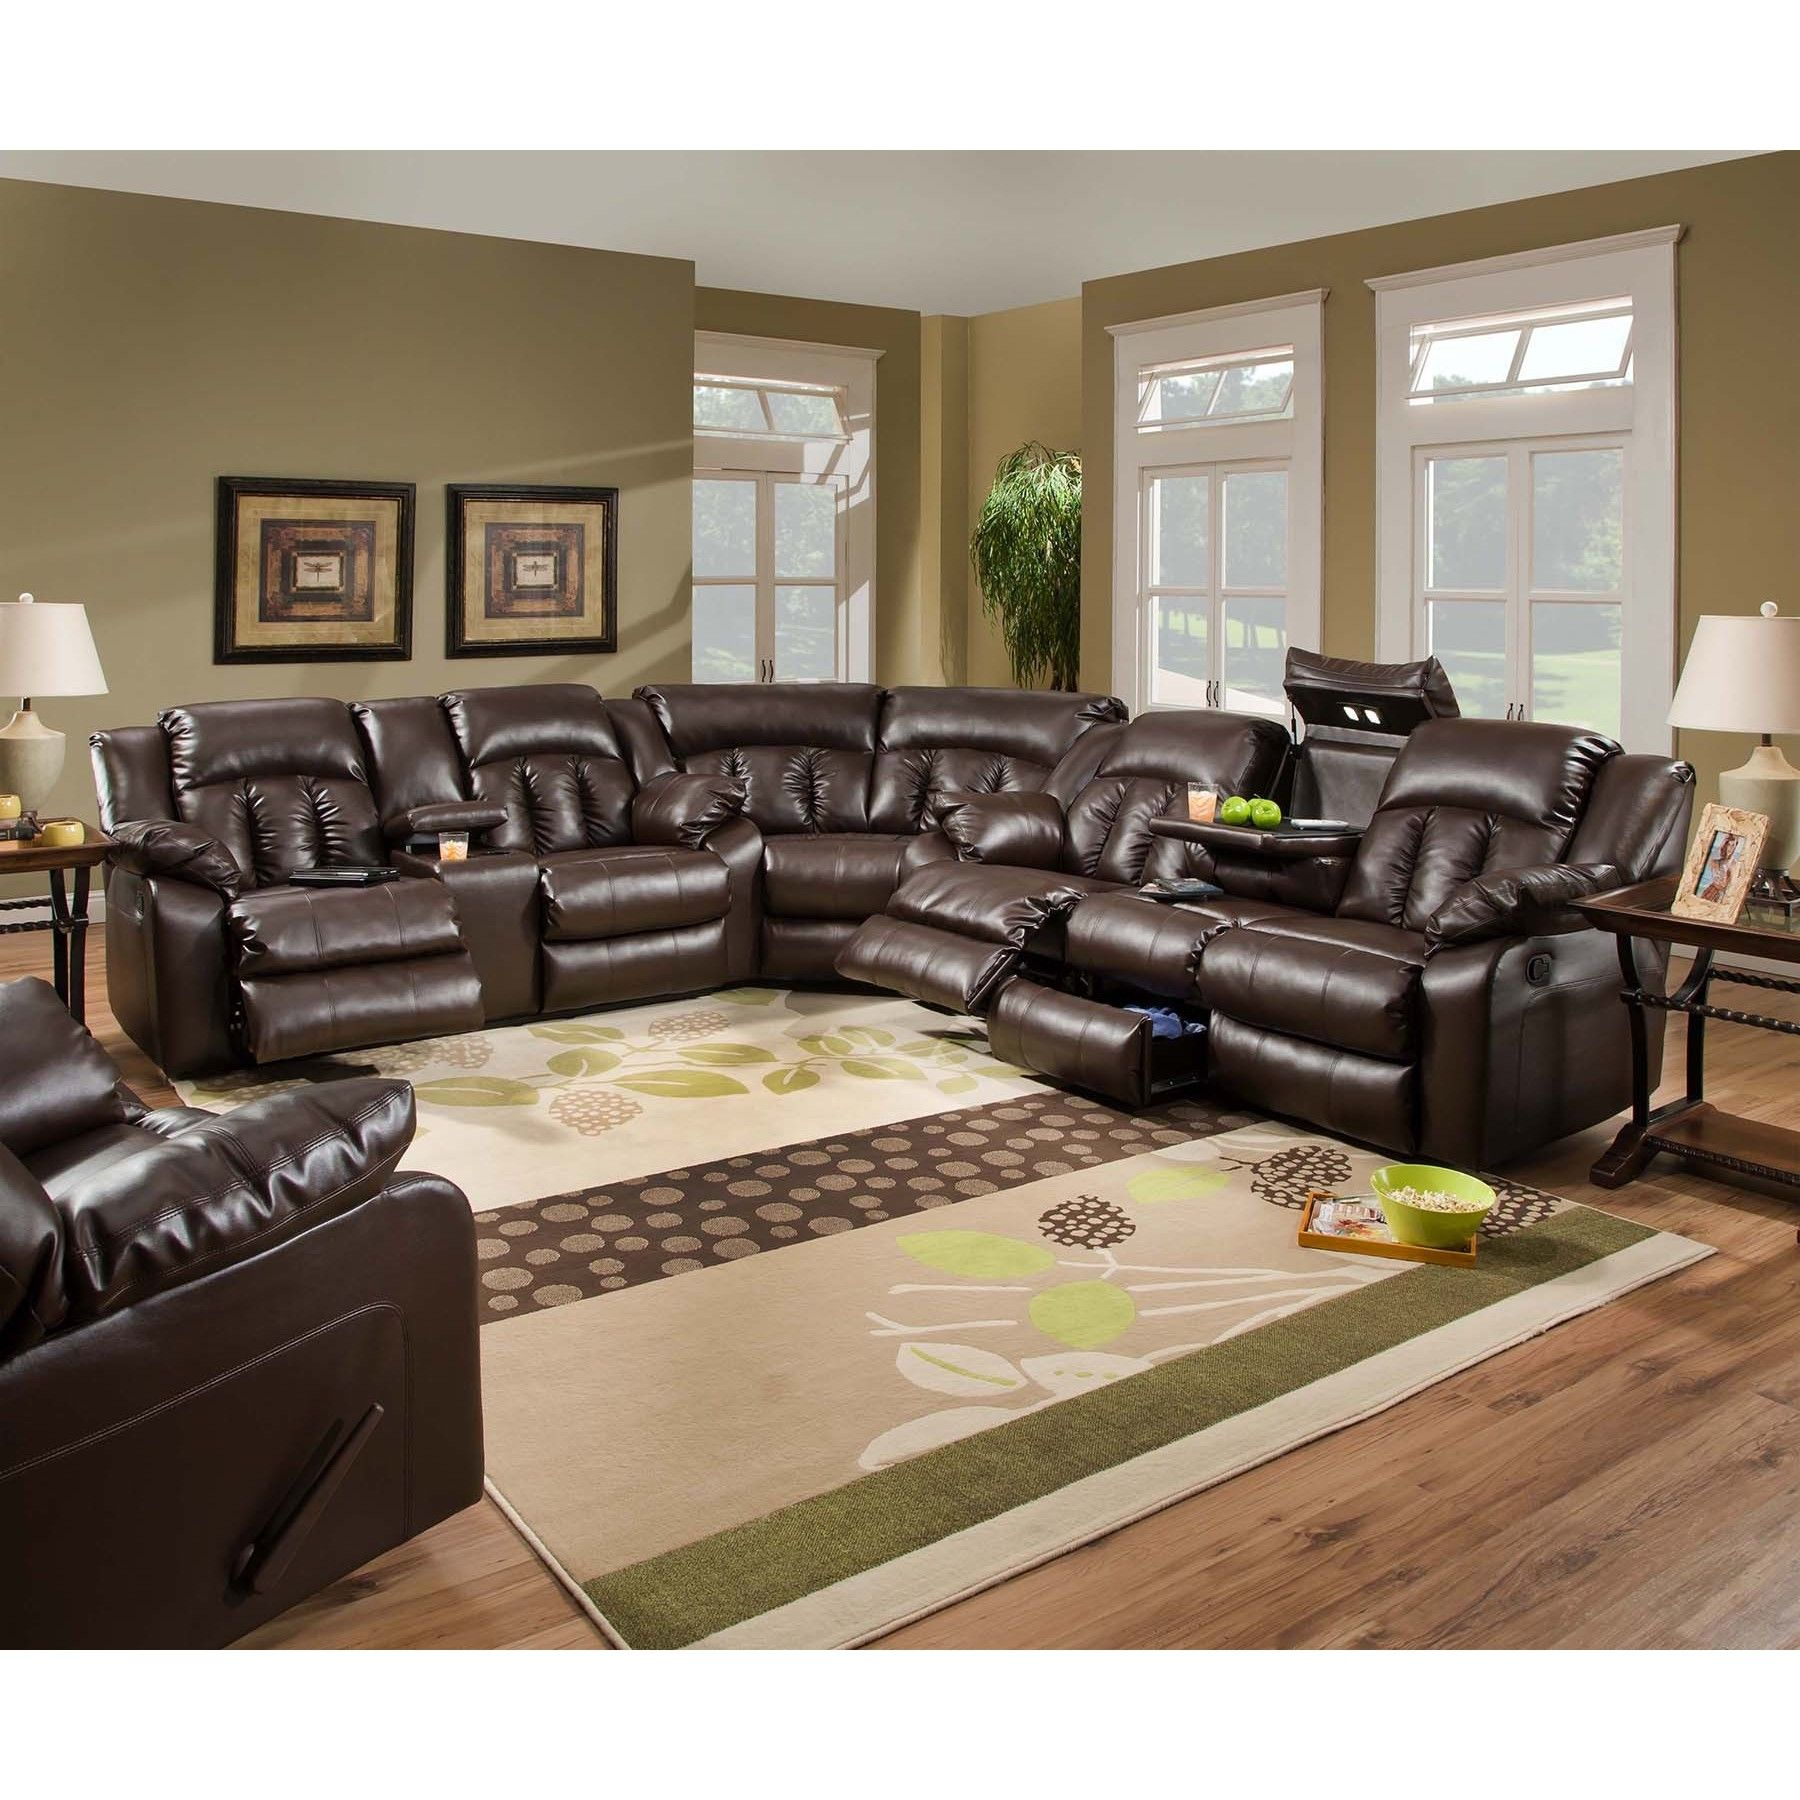 Awe Inspiring The Simmons Upholstery Sebring Motion Sectional Is Truly At Machost Co Dining Chair Design Ideas Machostcouk